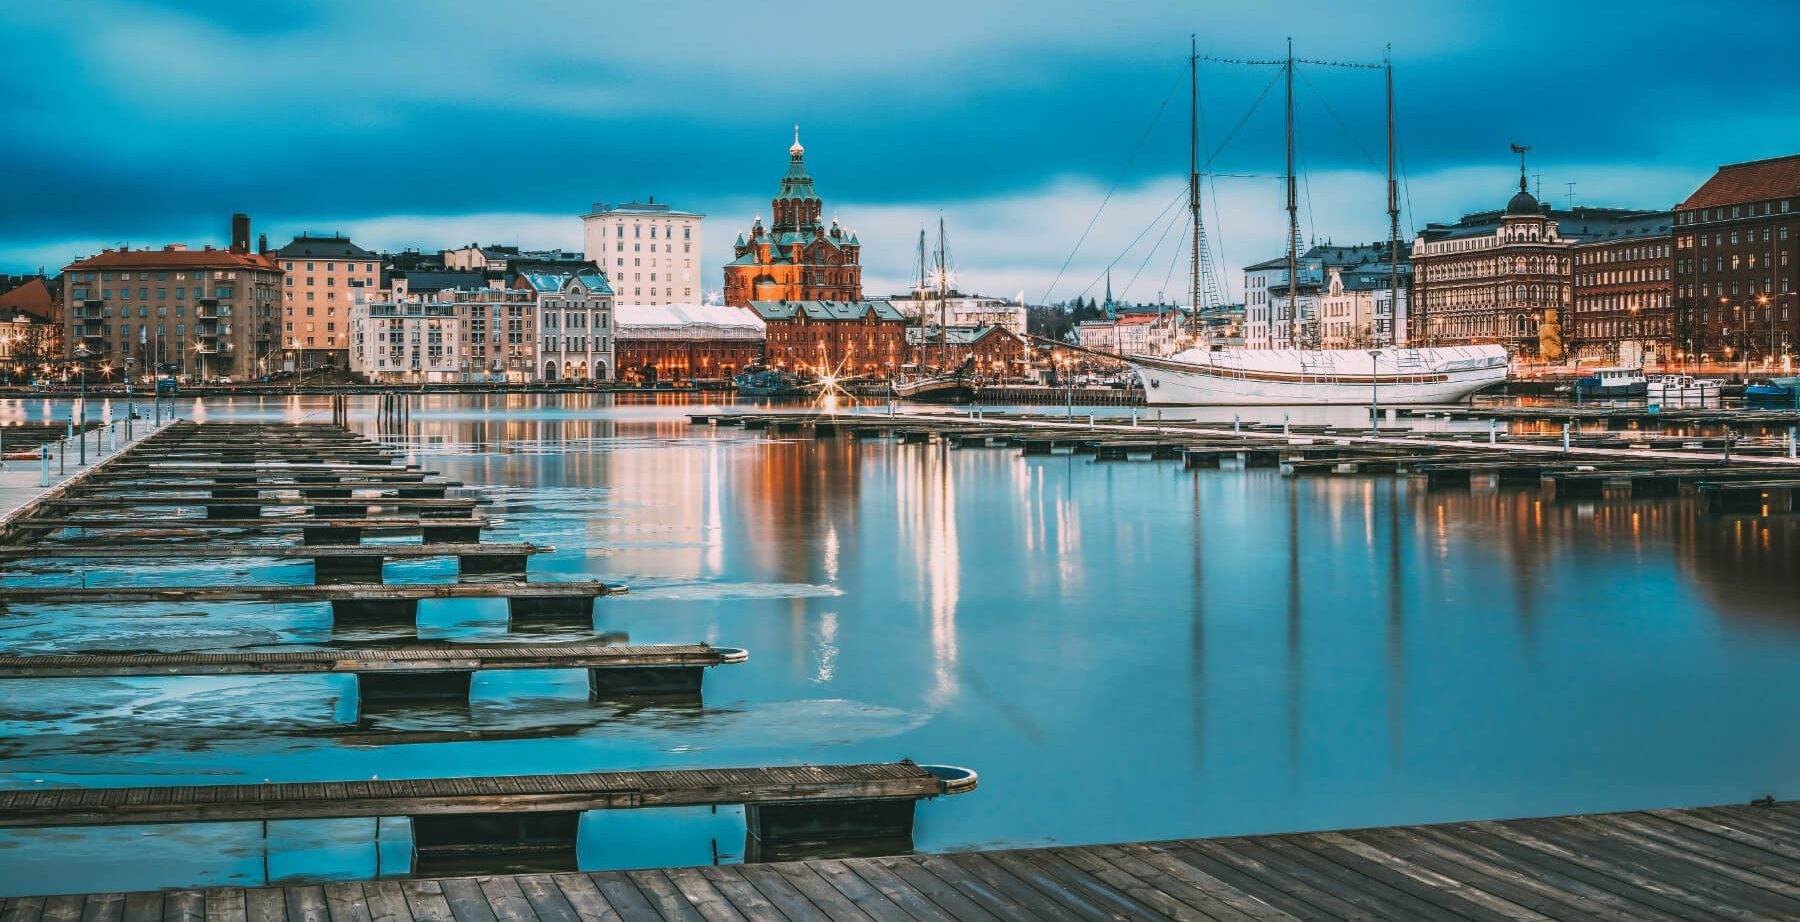 helsinki-finland-view-of-evening-city-and-PW9QHH6